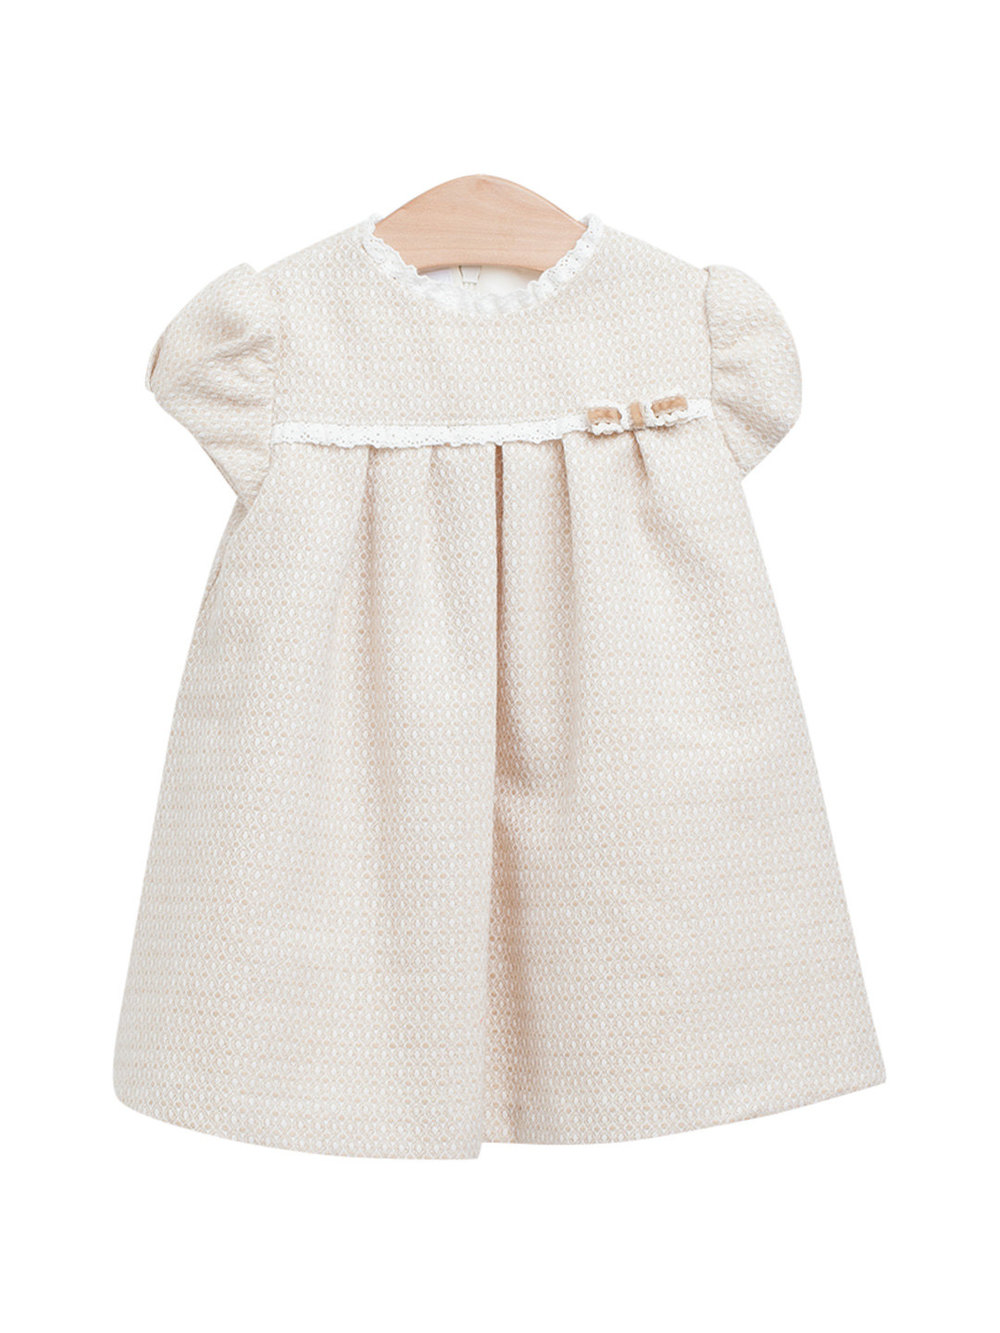 Available at Baby Spain.